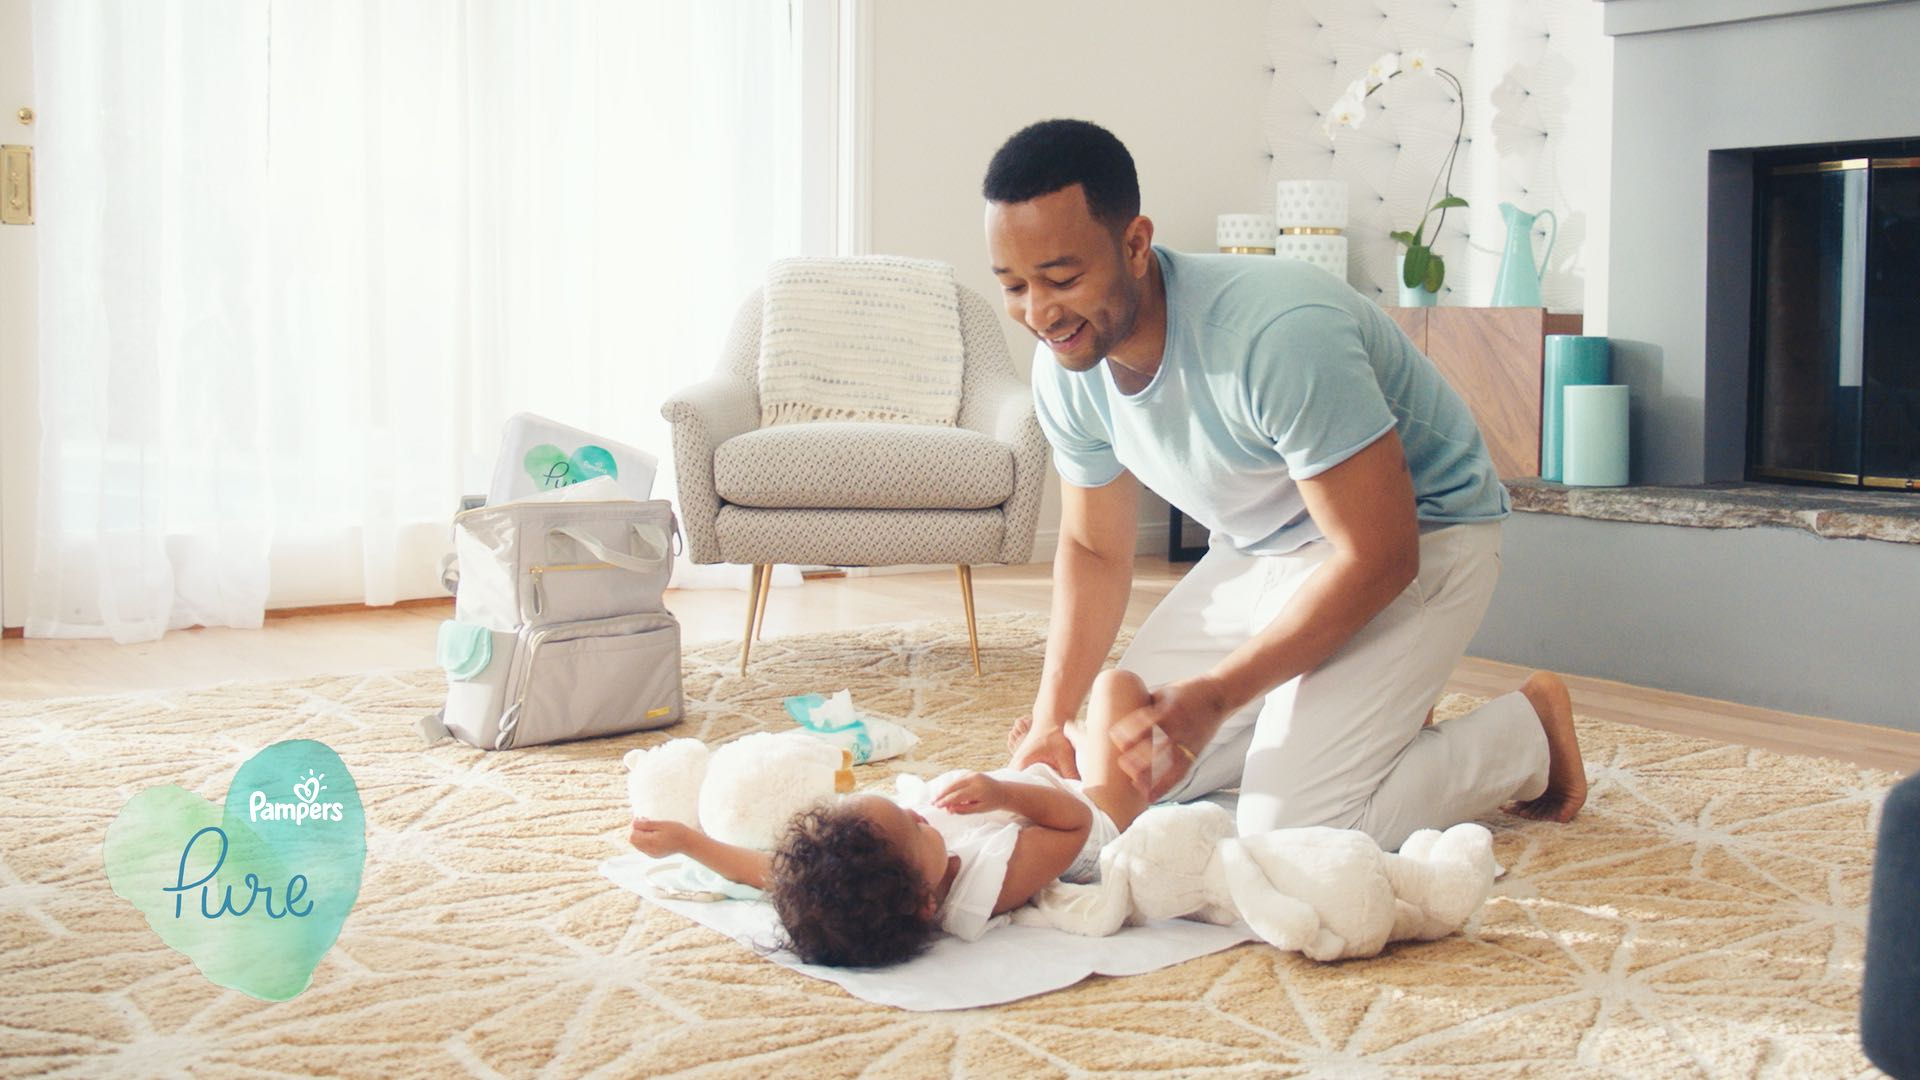 Pampers-JL_FathersDay